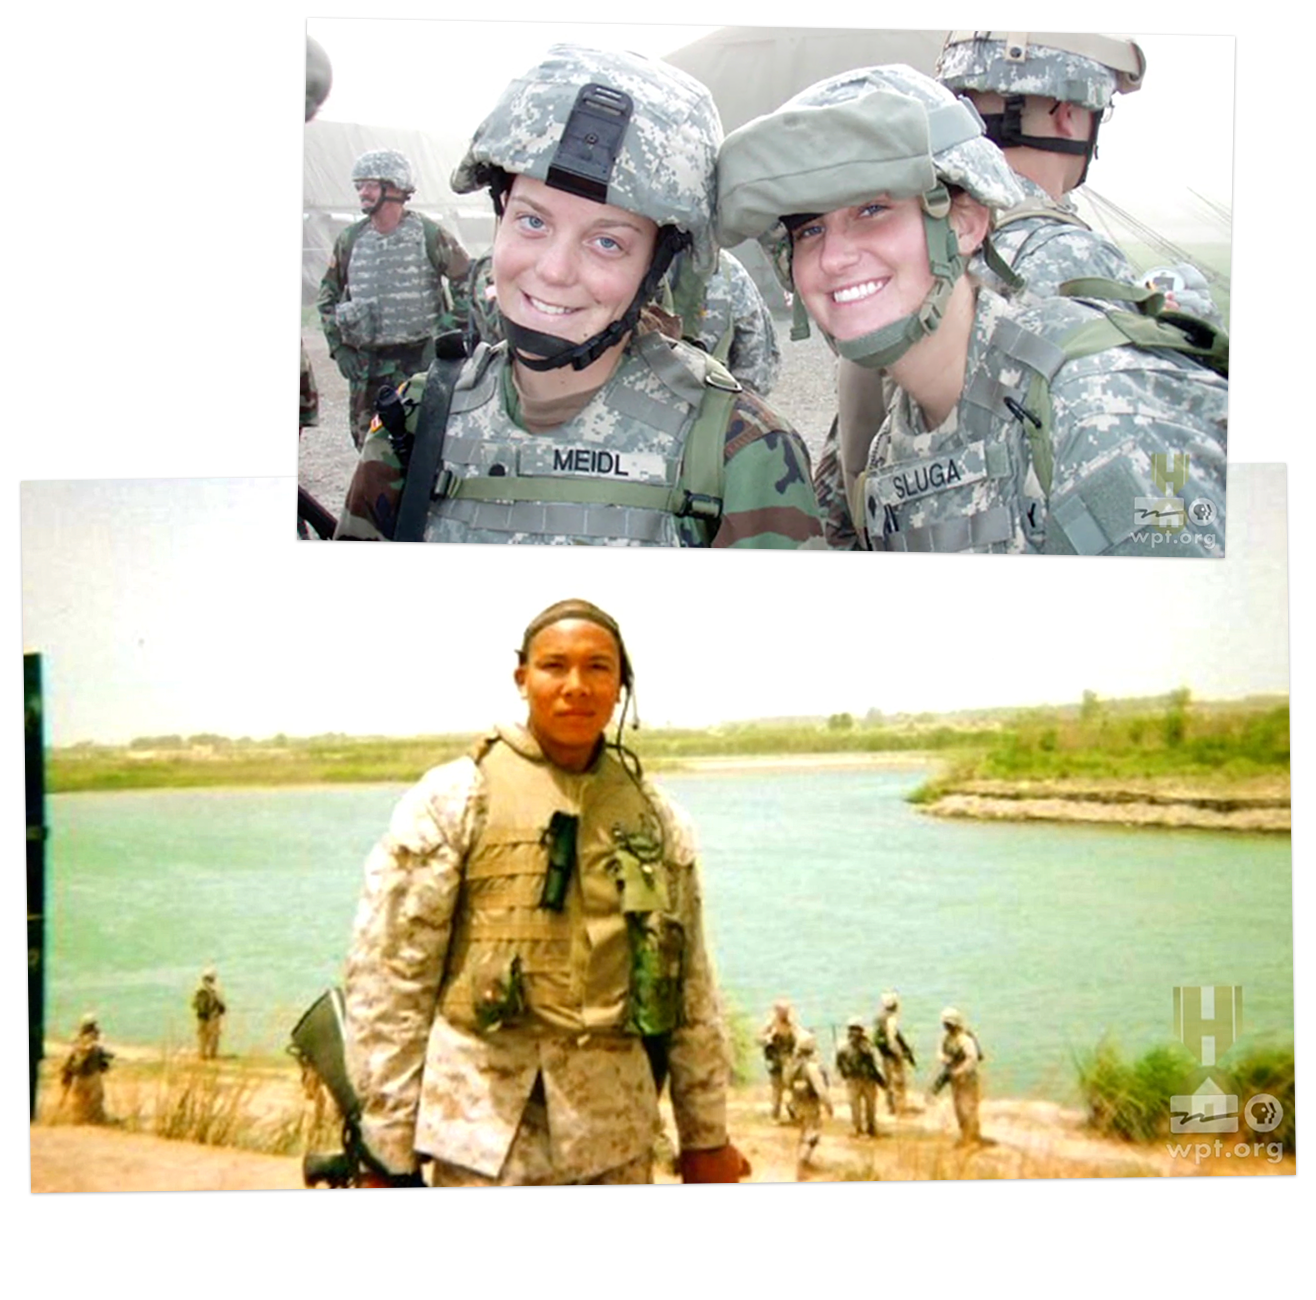 Two photographs of Americans serving in the military.